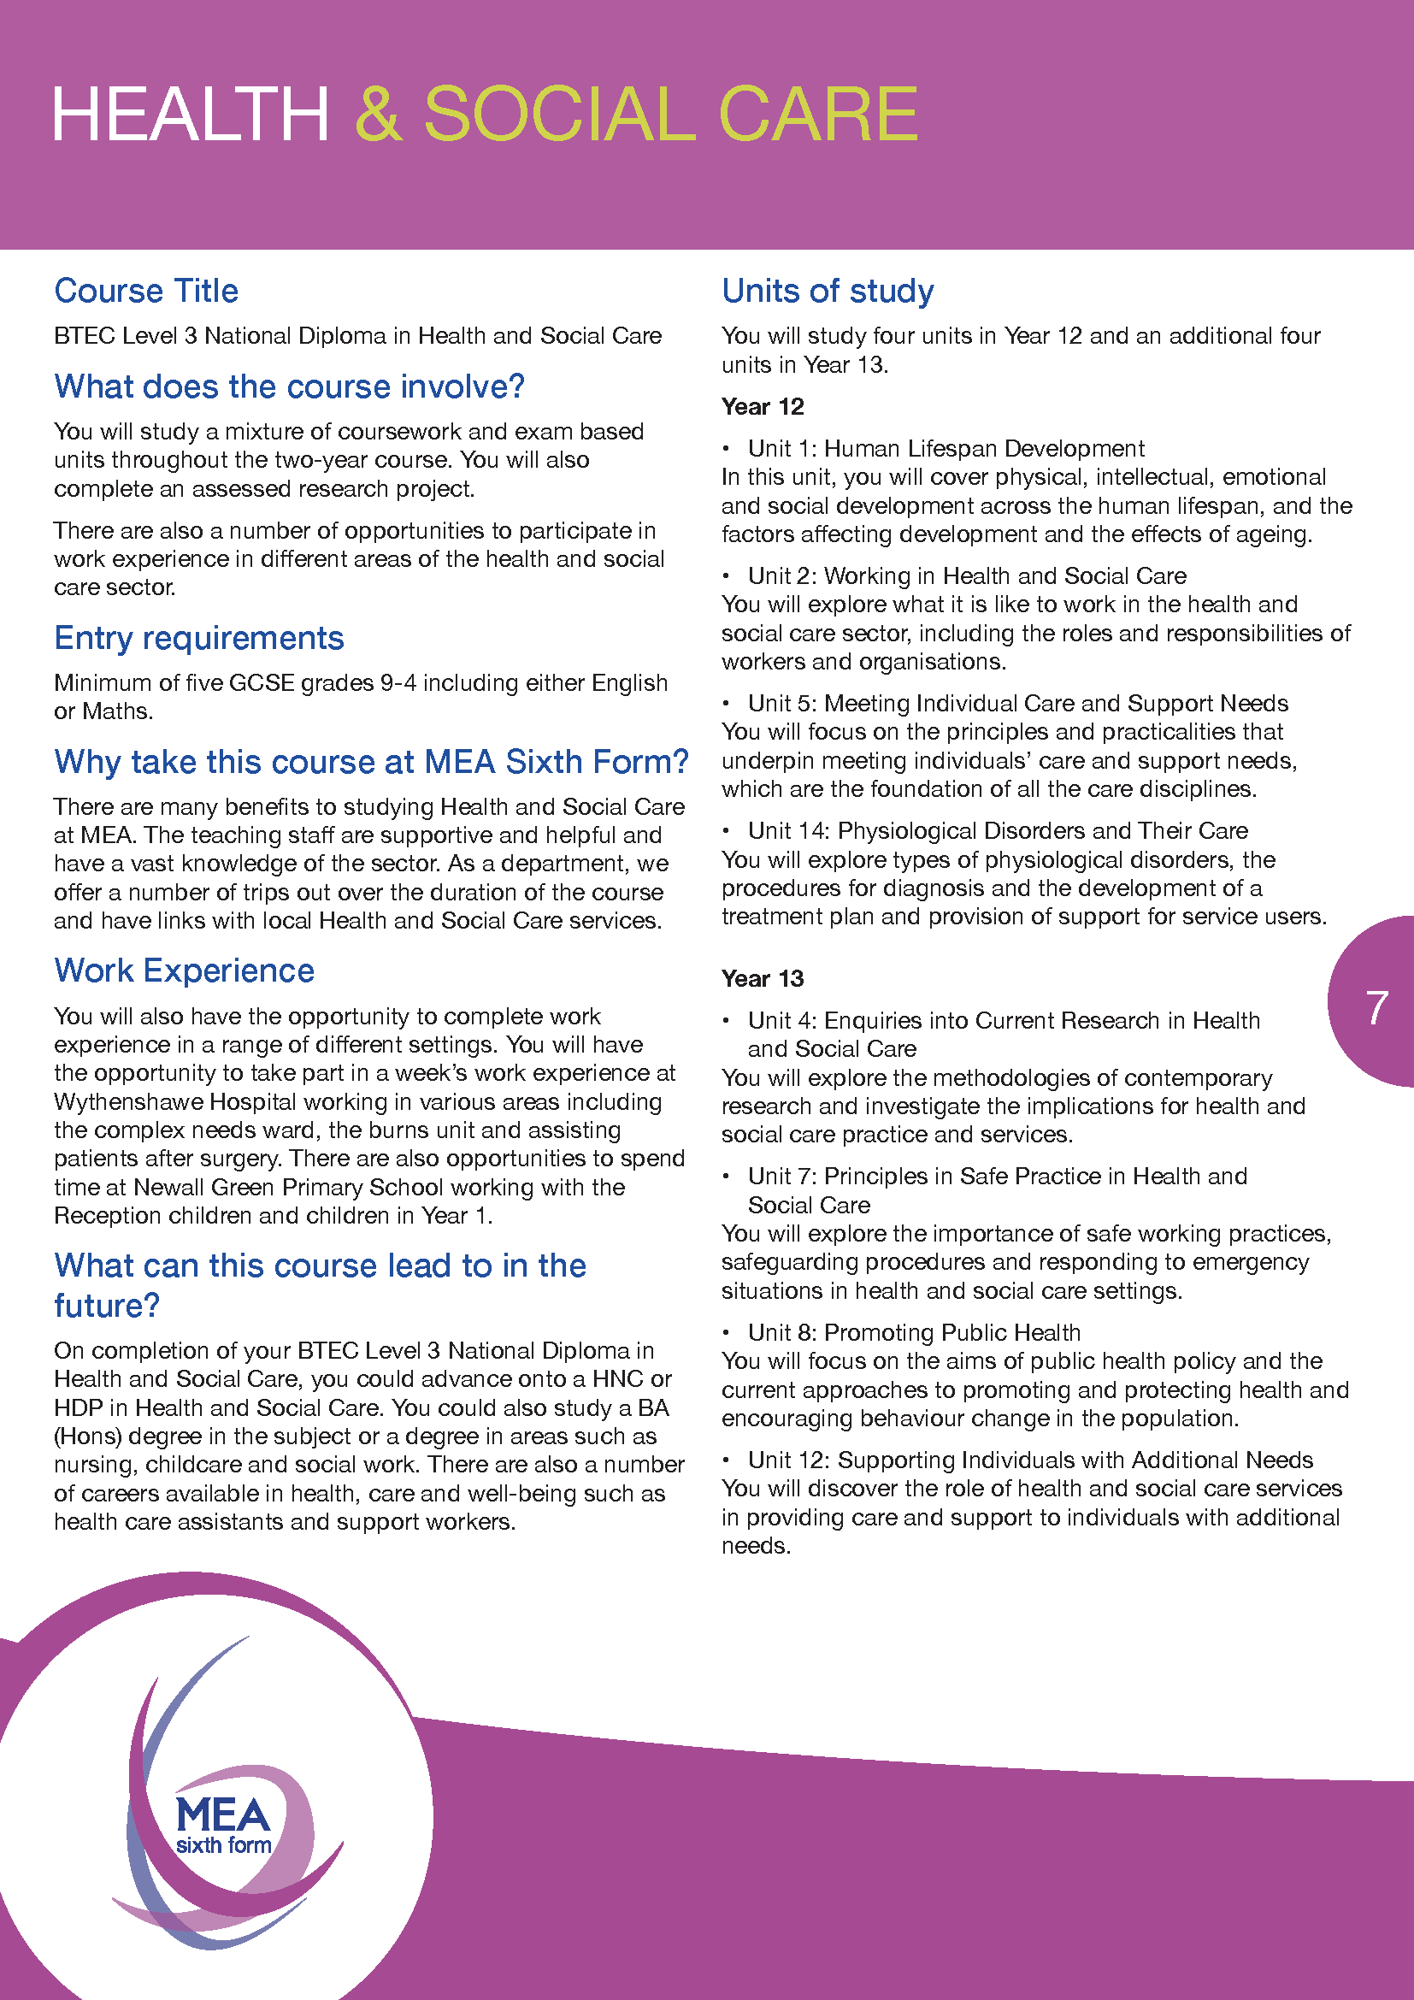 MEA Sixth Form Prospectus May 20 v4 Page 07